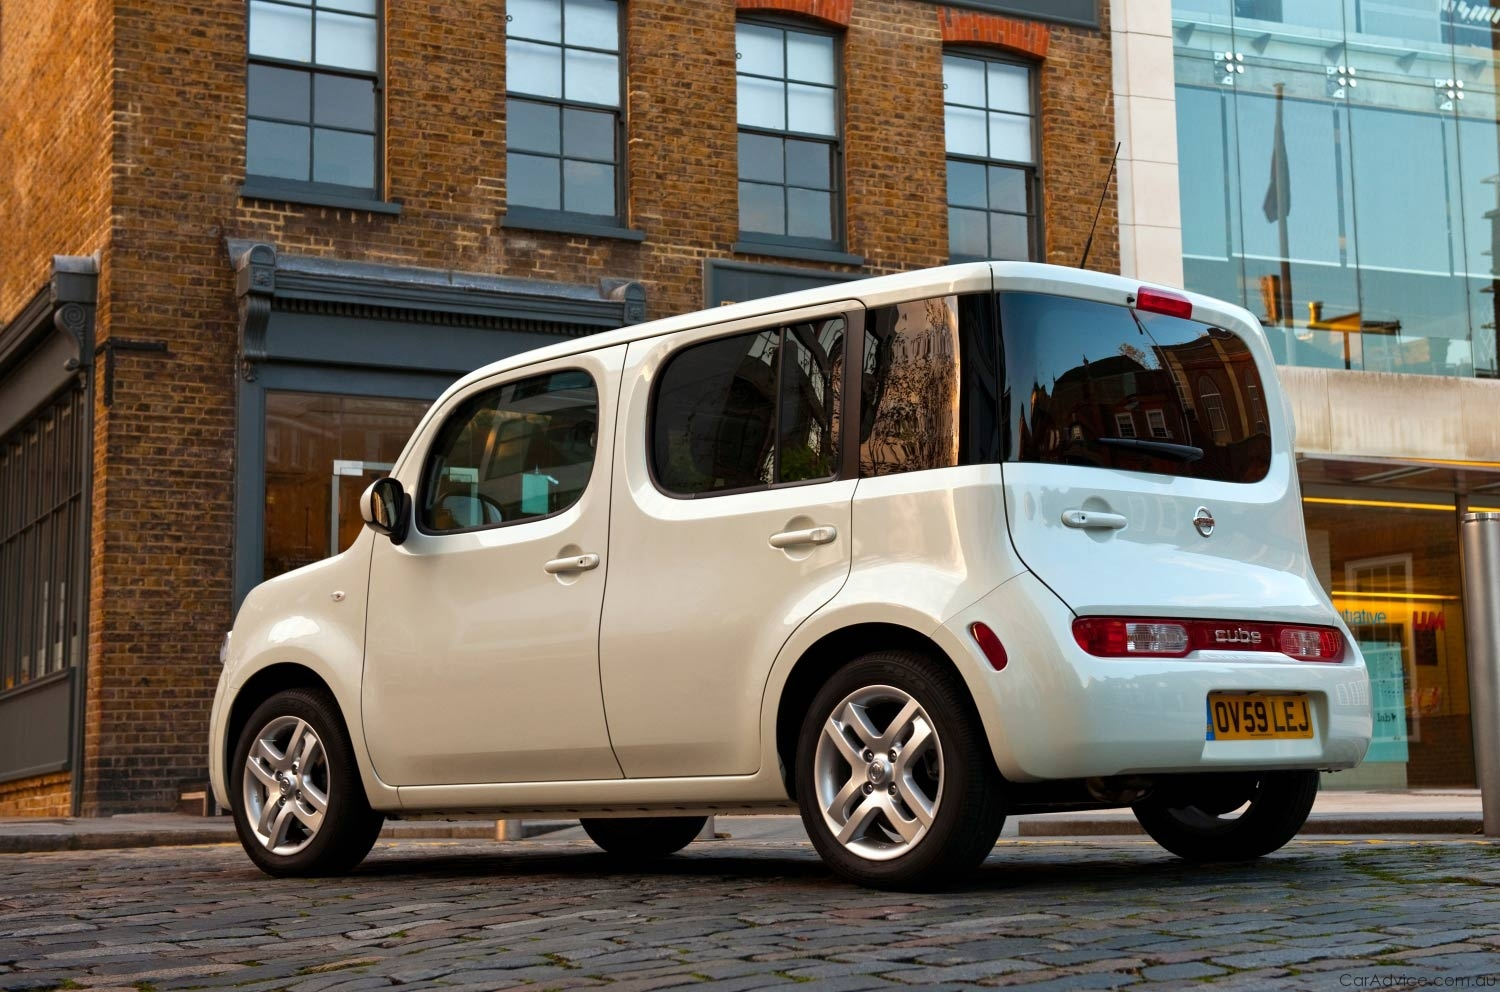 Nissan Cube Set For Uk Streets In 2010 Photos Caradvice